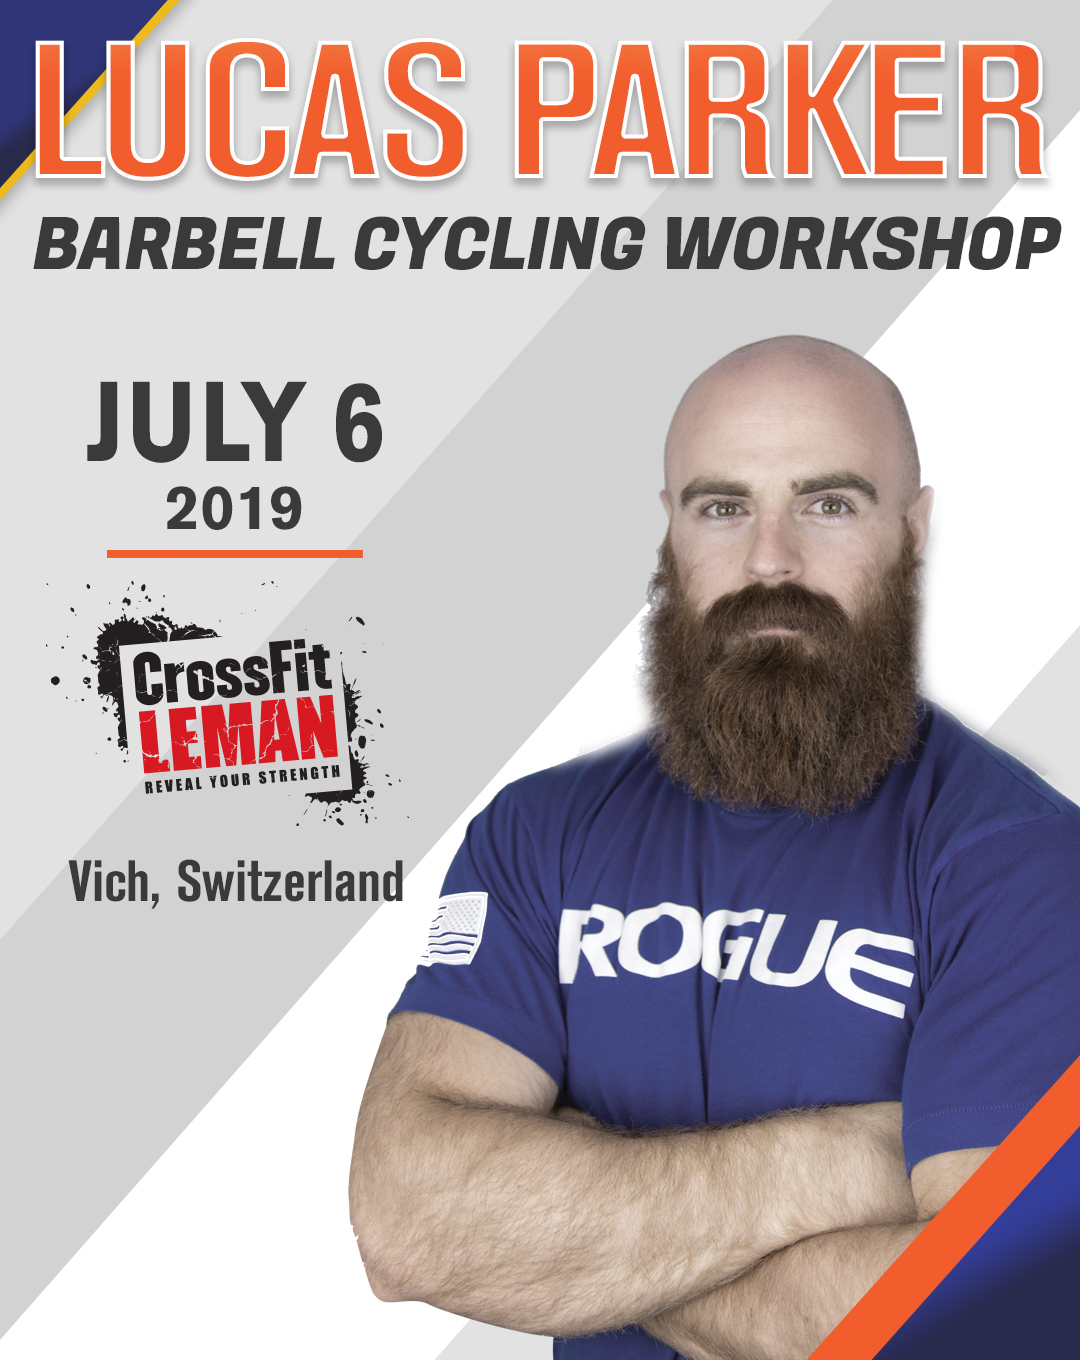 Lucas Parker Barbell Cycling Workshop - CrossFit Leman